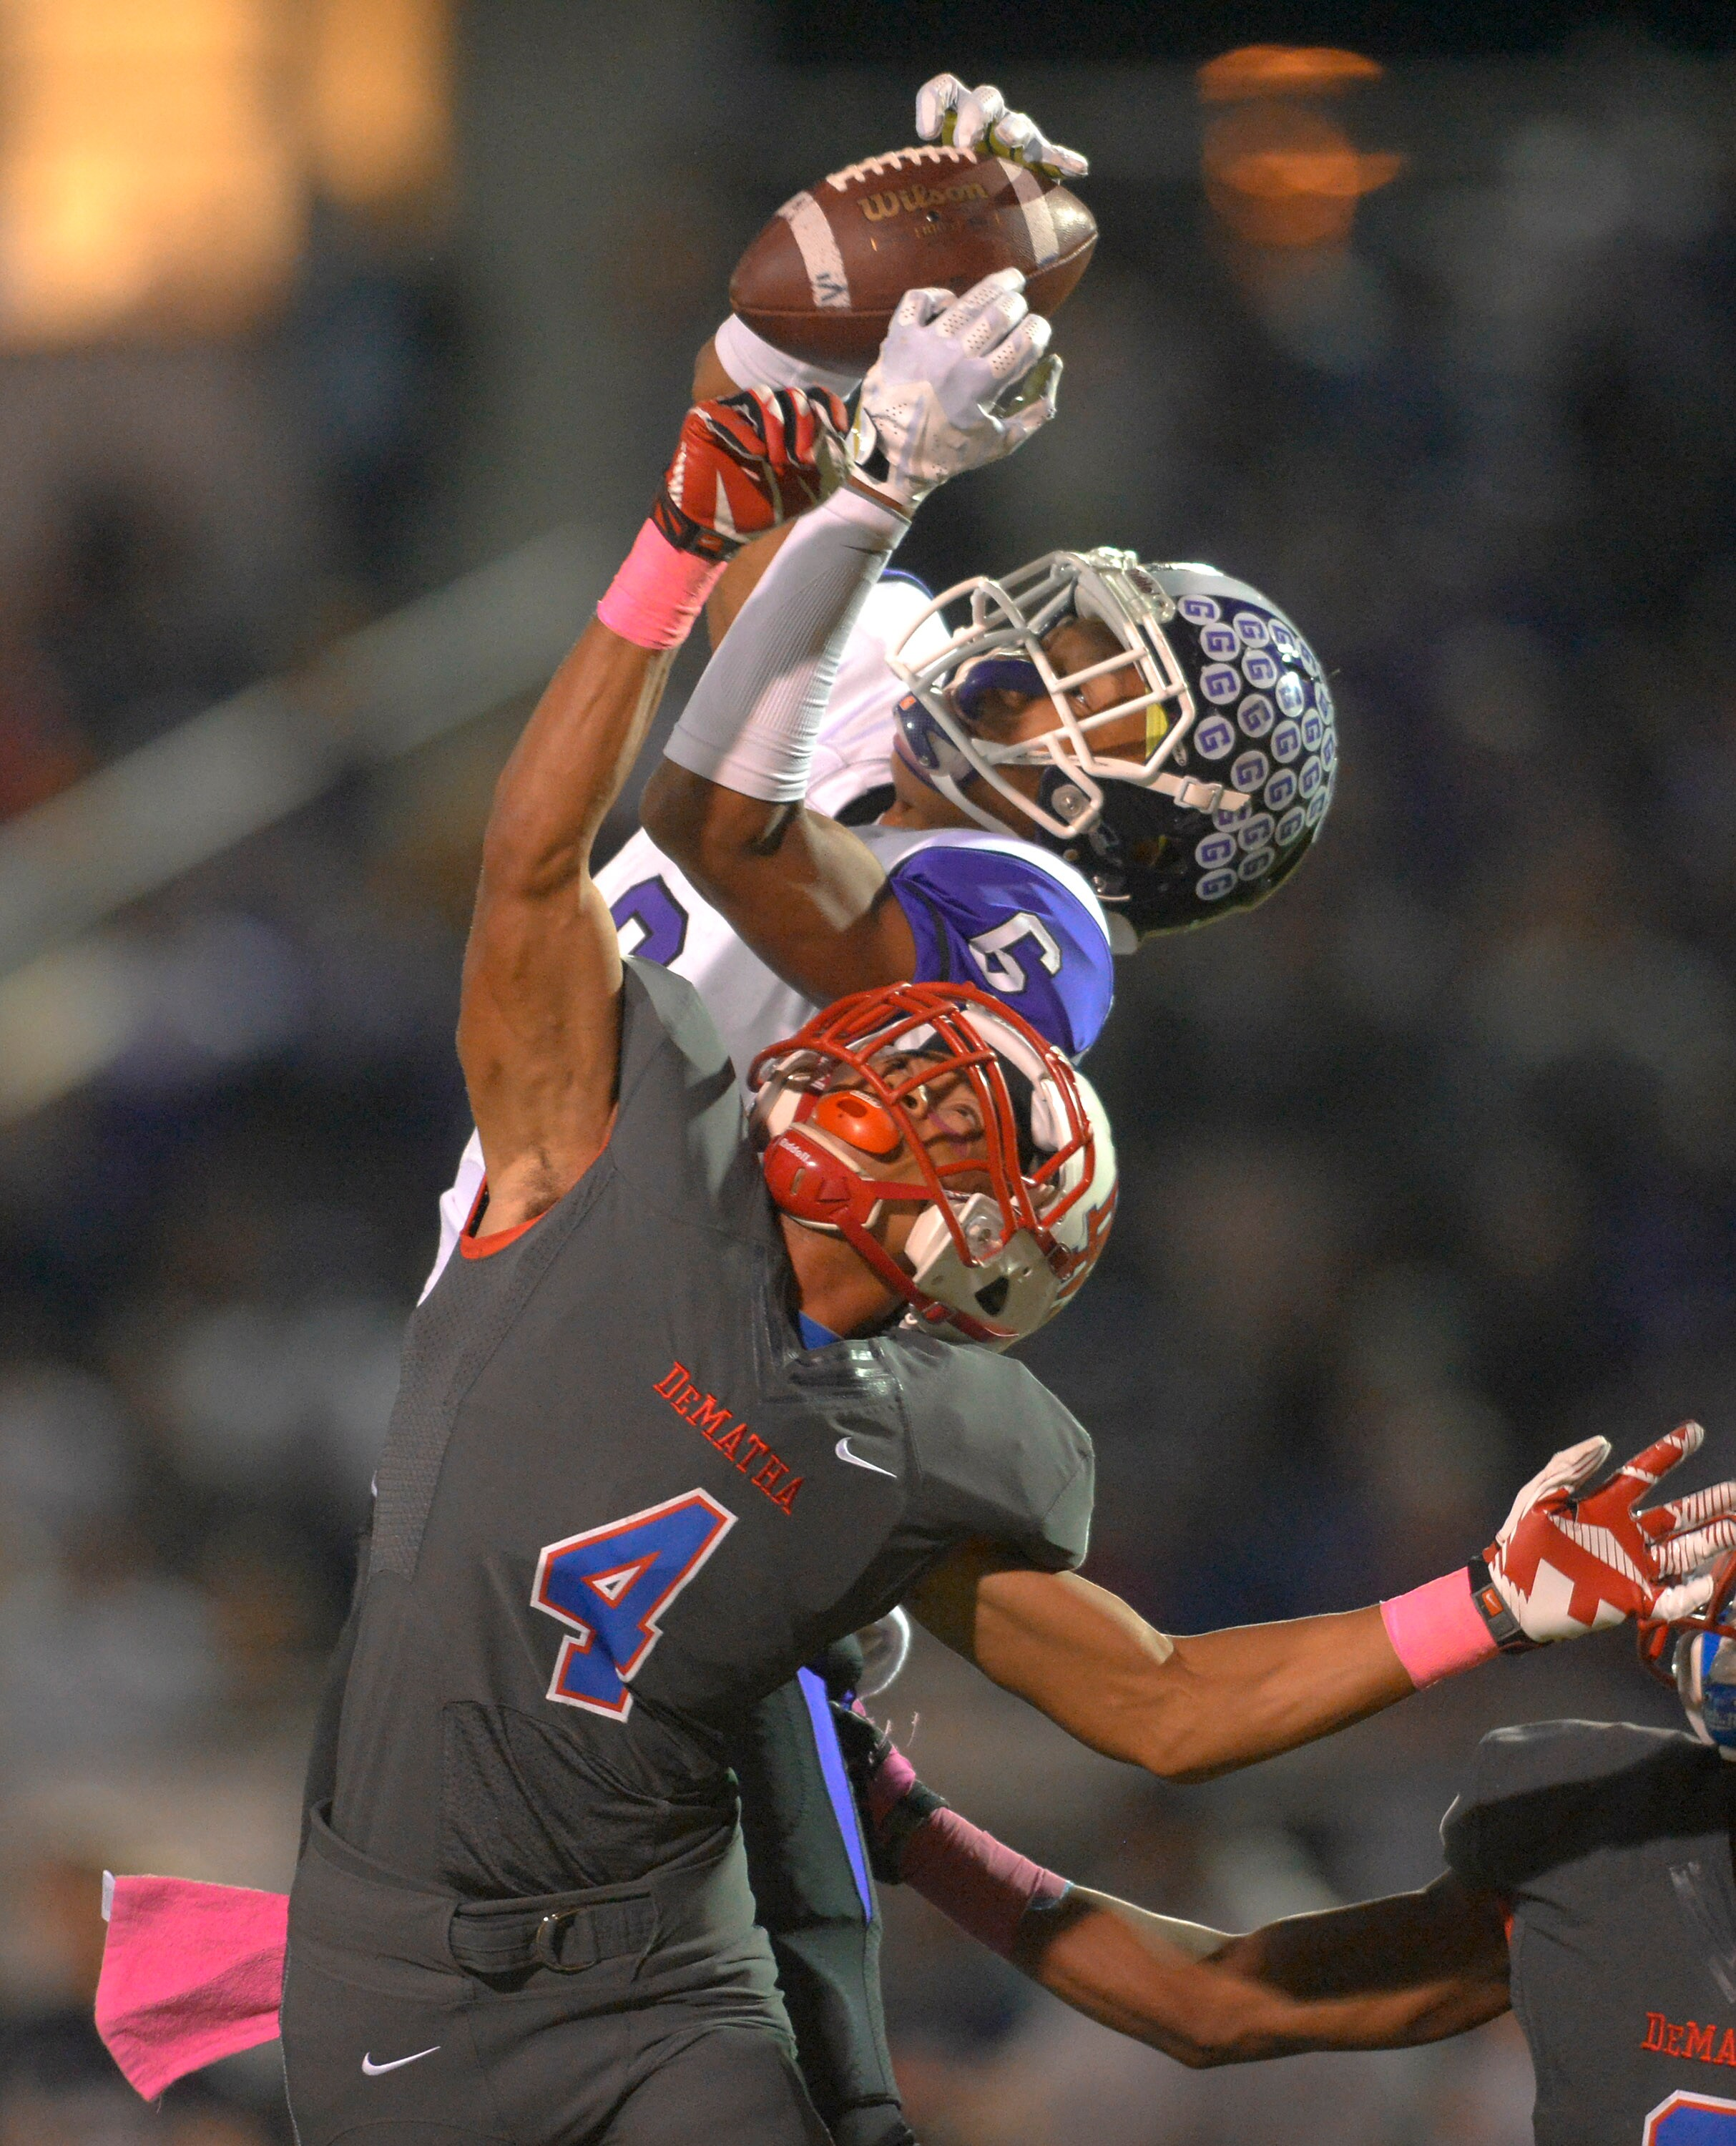 Friday Night Football Early Report Including Dematha Win Over Gonzaga - Washington Post